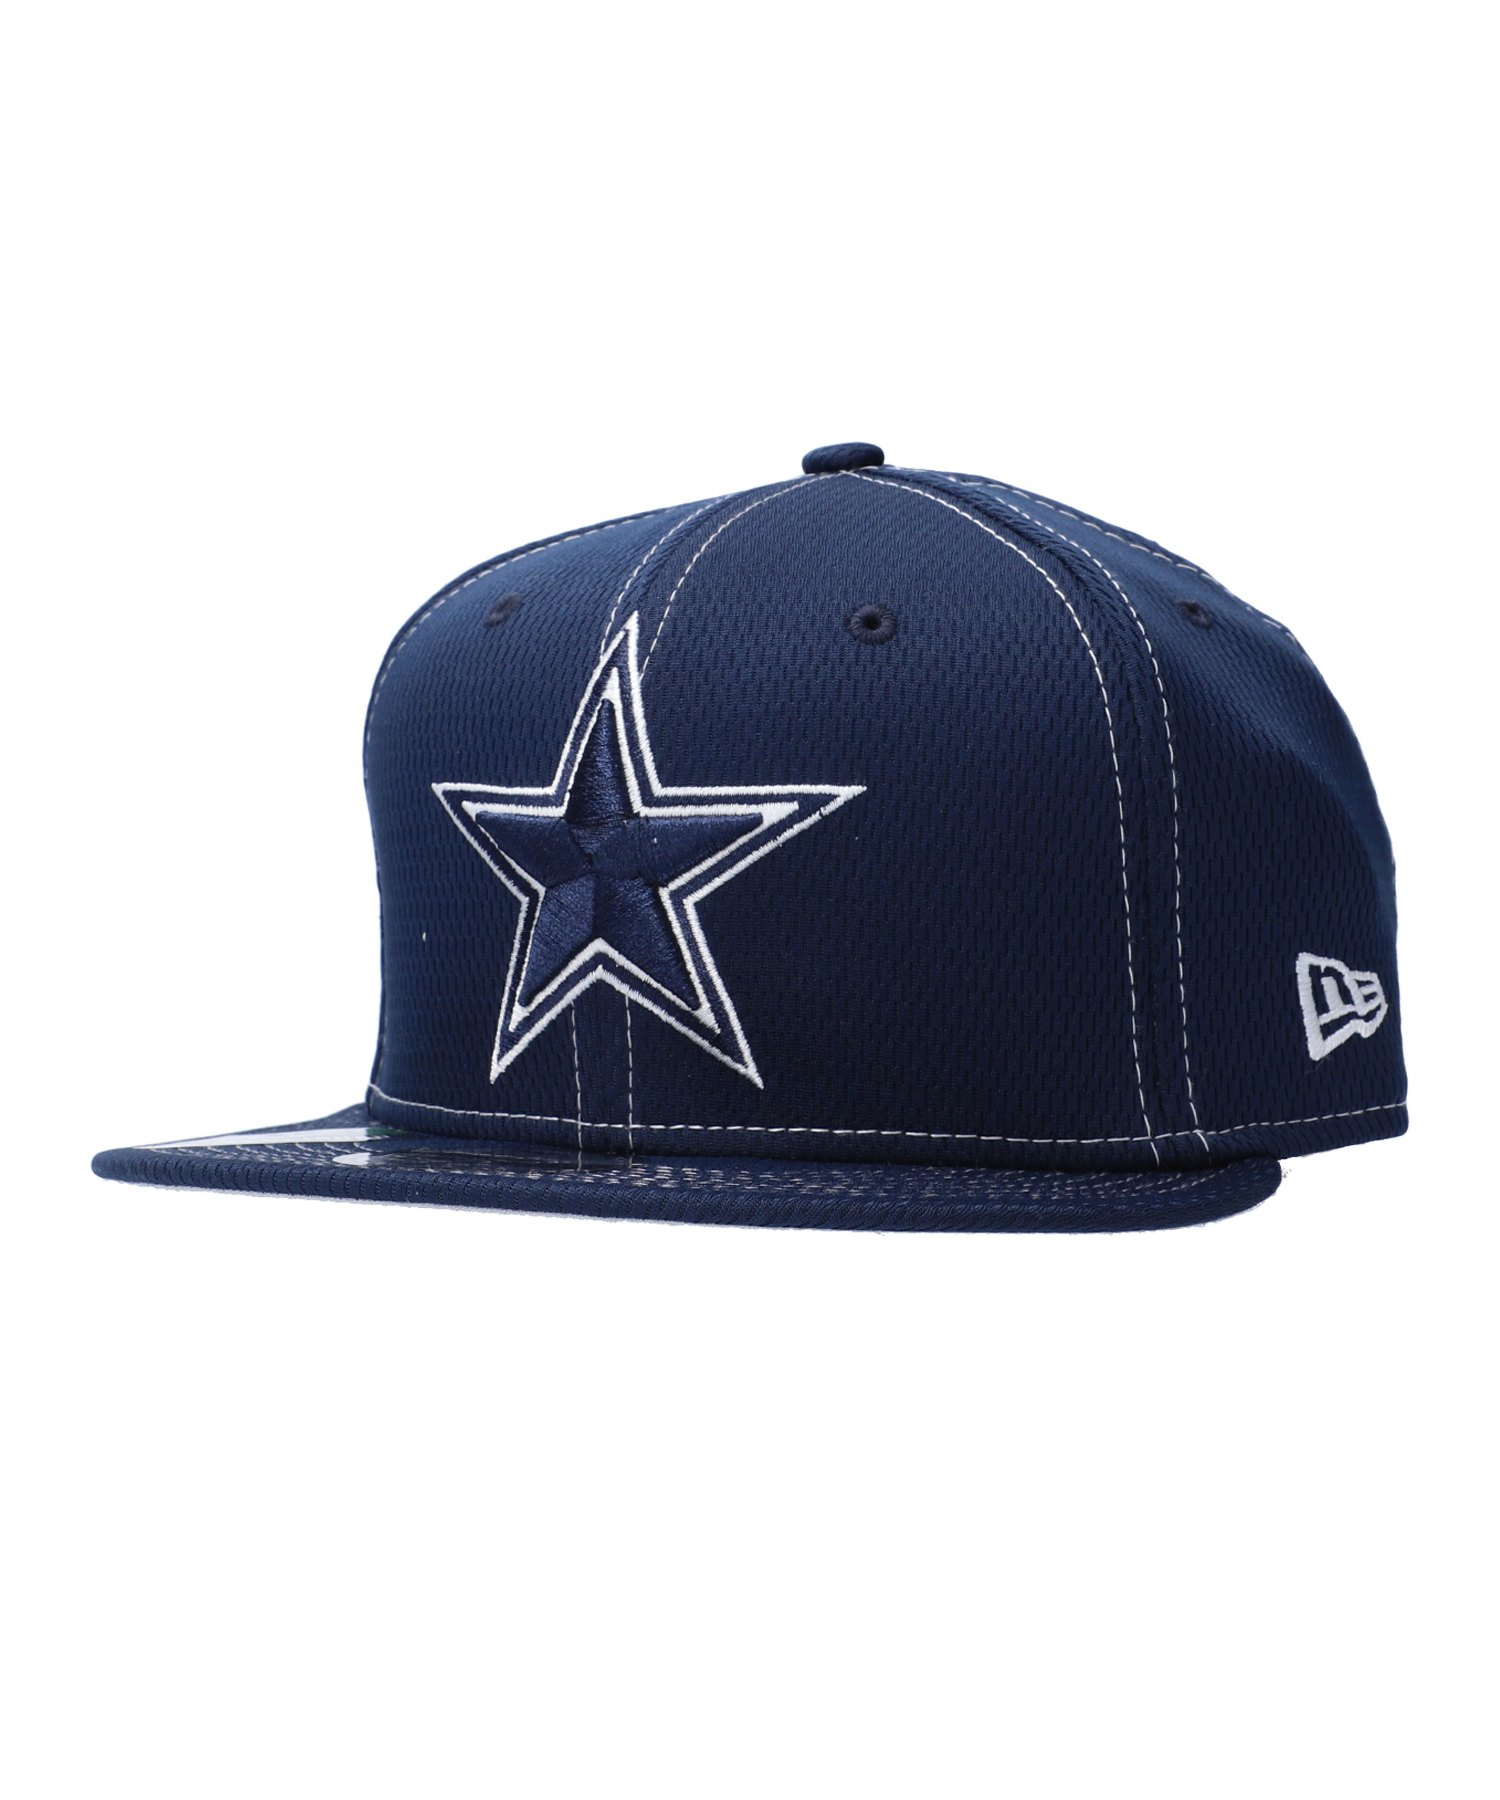 New Era NFL 9Fifty Dallas Cowboys OTC Cap Blau - blau